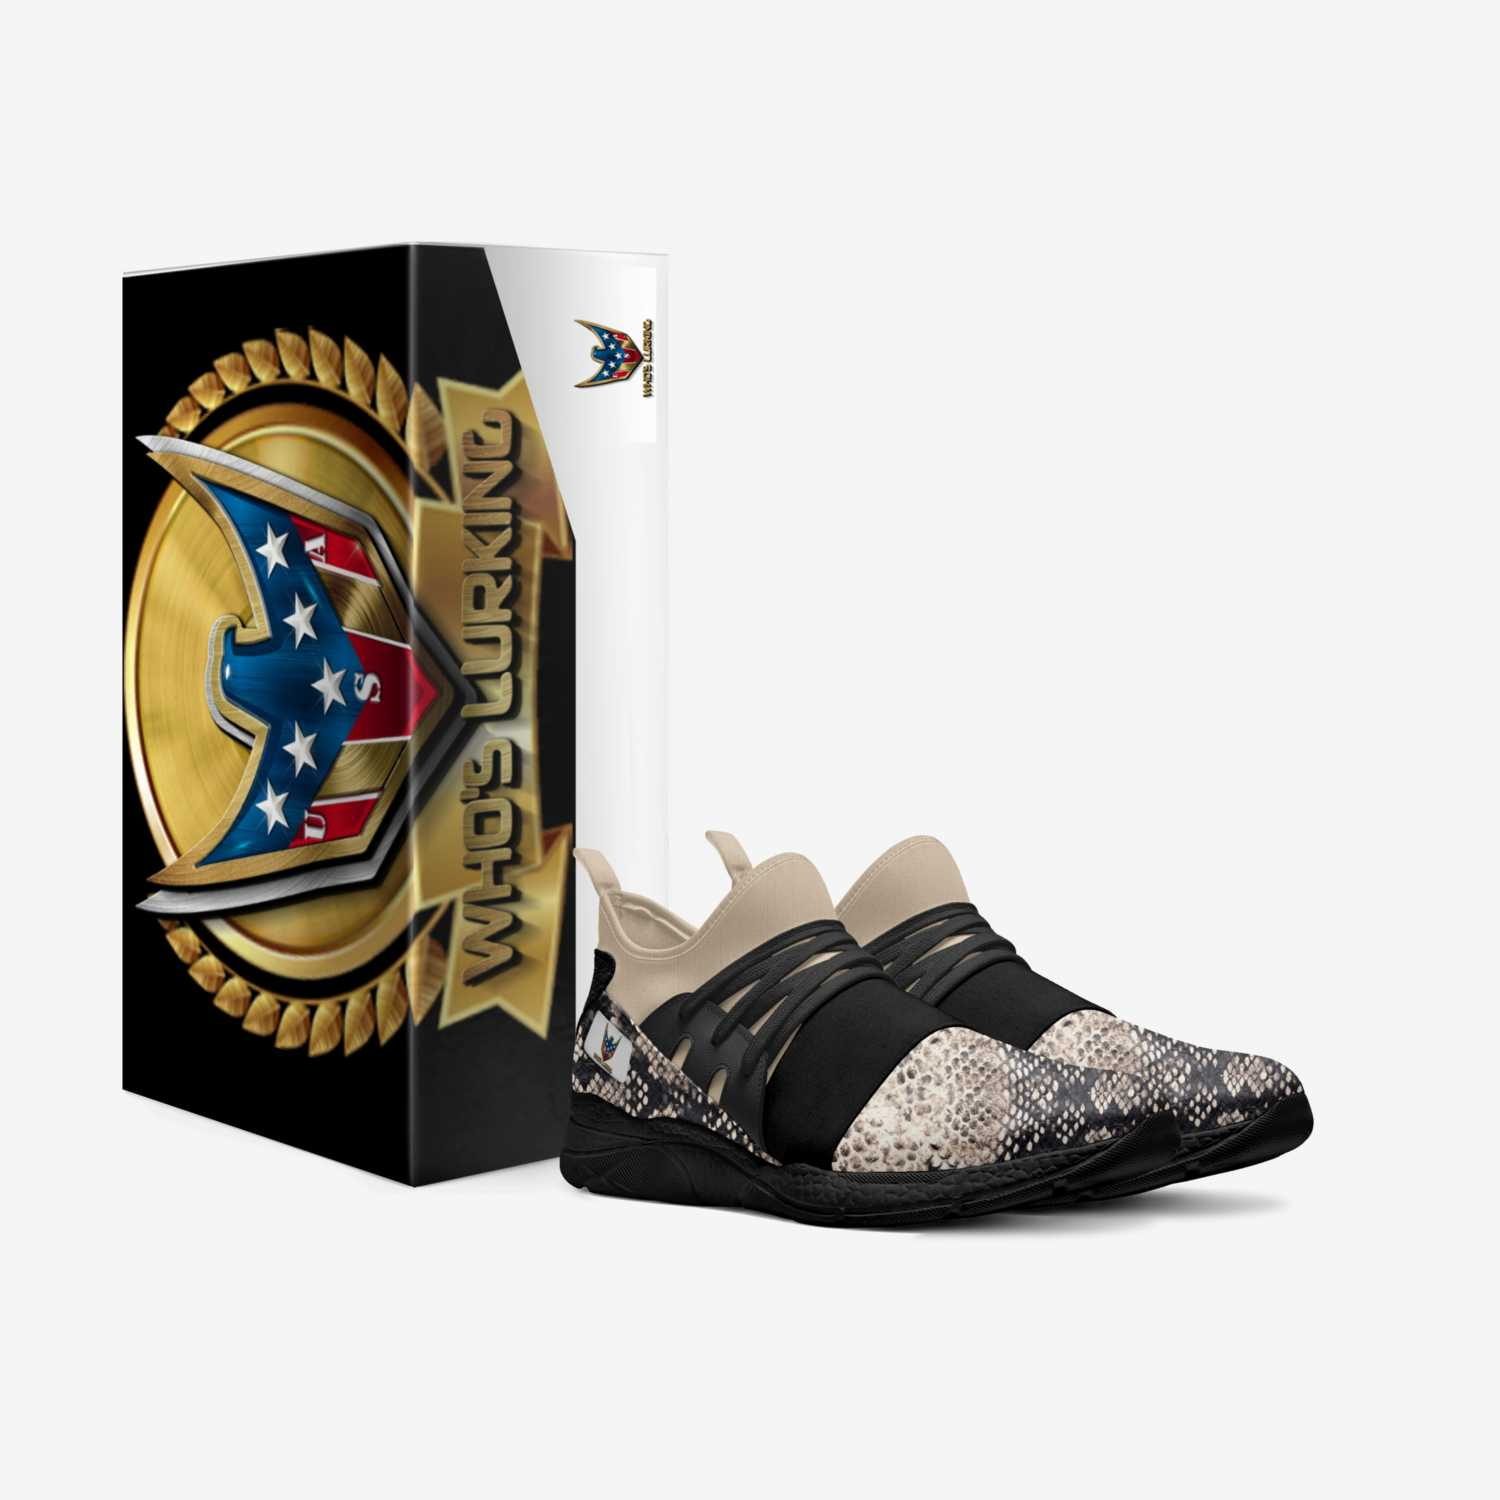 who's lurking custom made in Italy shoes by Jvon Koo | Box view